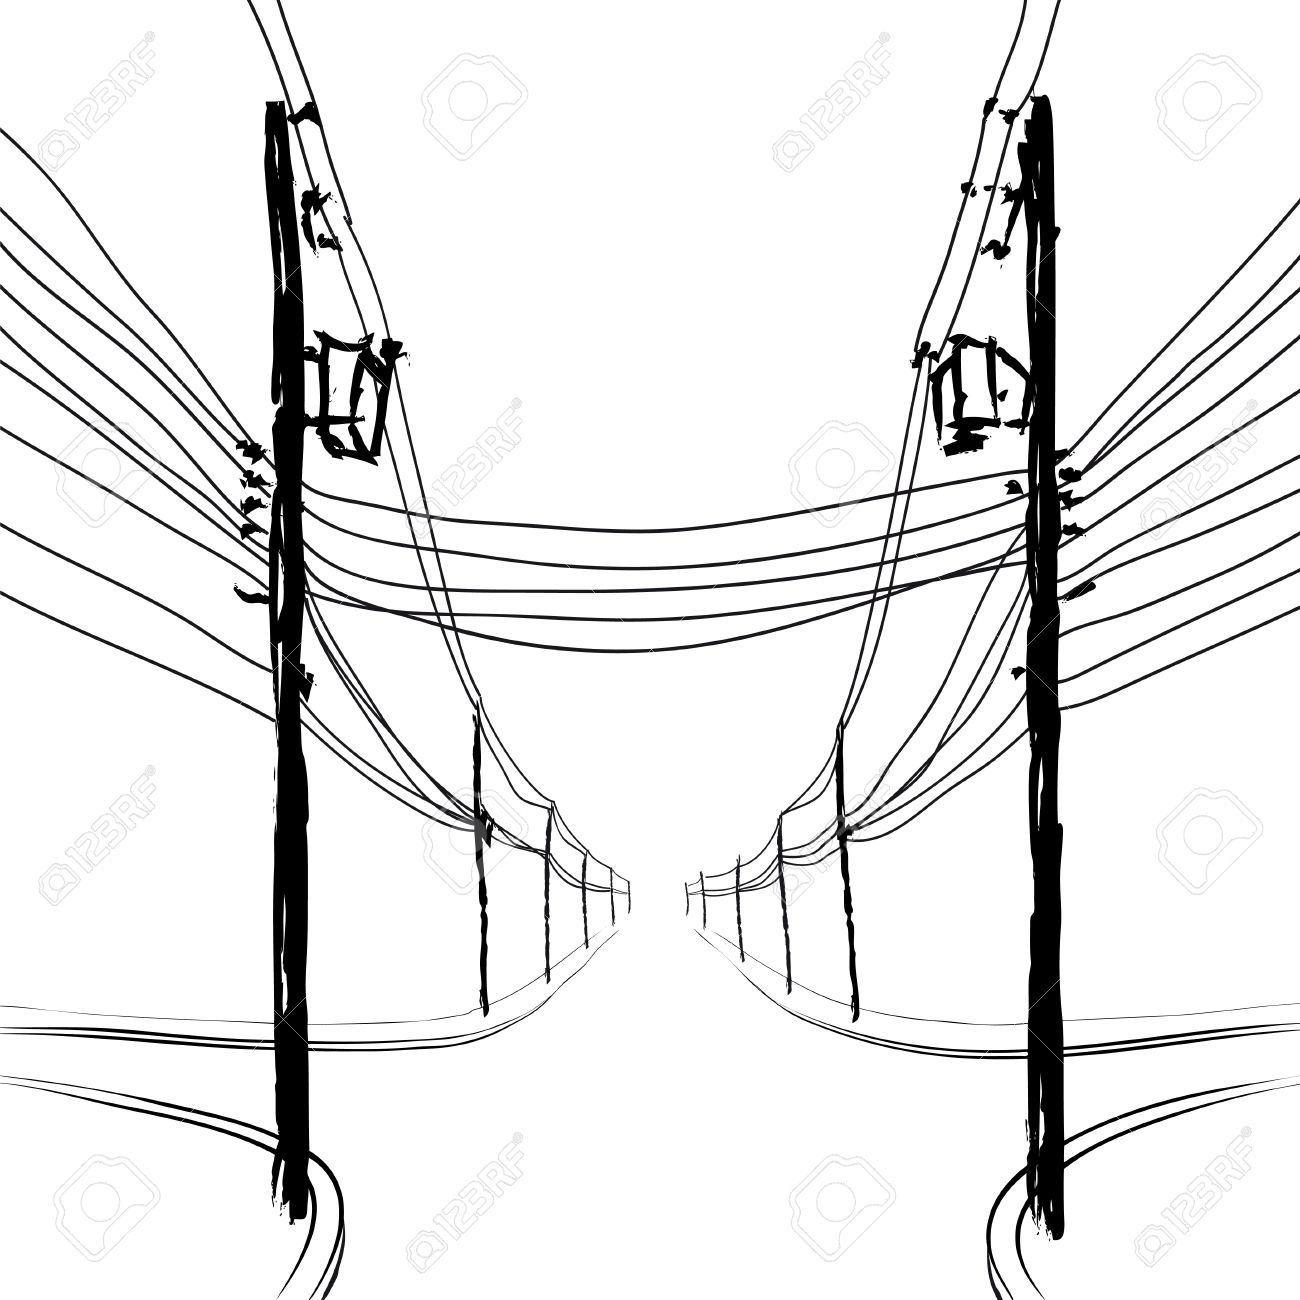 Telephone Pole Drawing At Free For Personal Use Wires Diagram 1300x1300 Poles With Royalty Cliparts Vectors And Stock